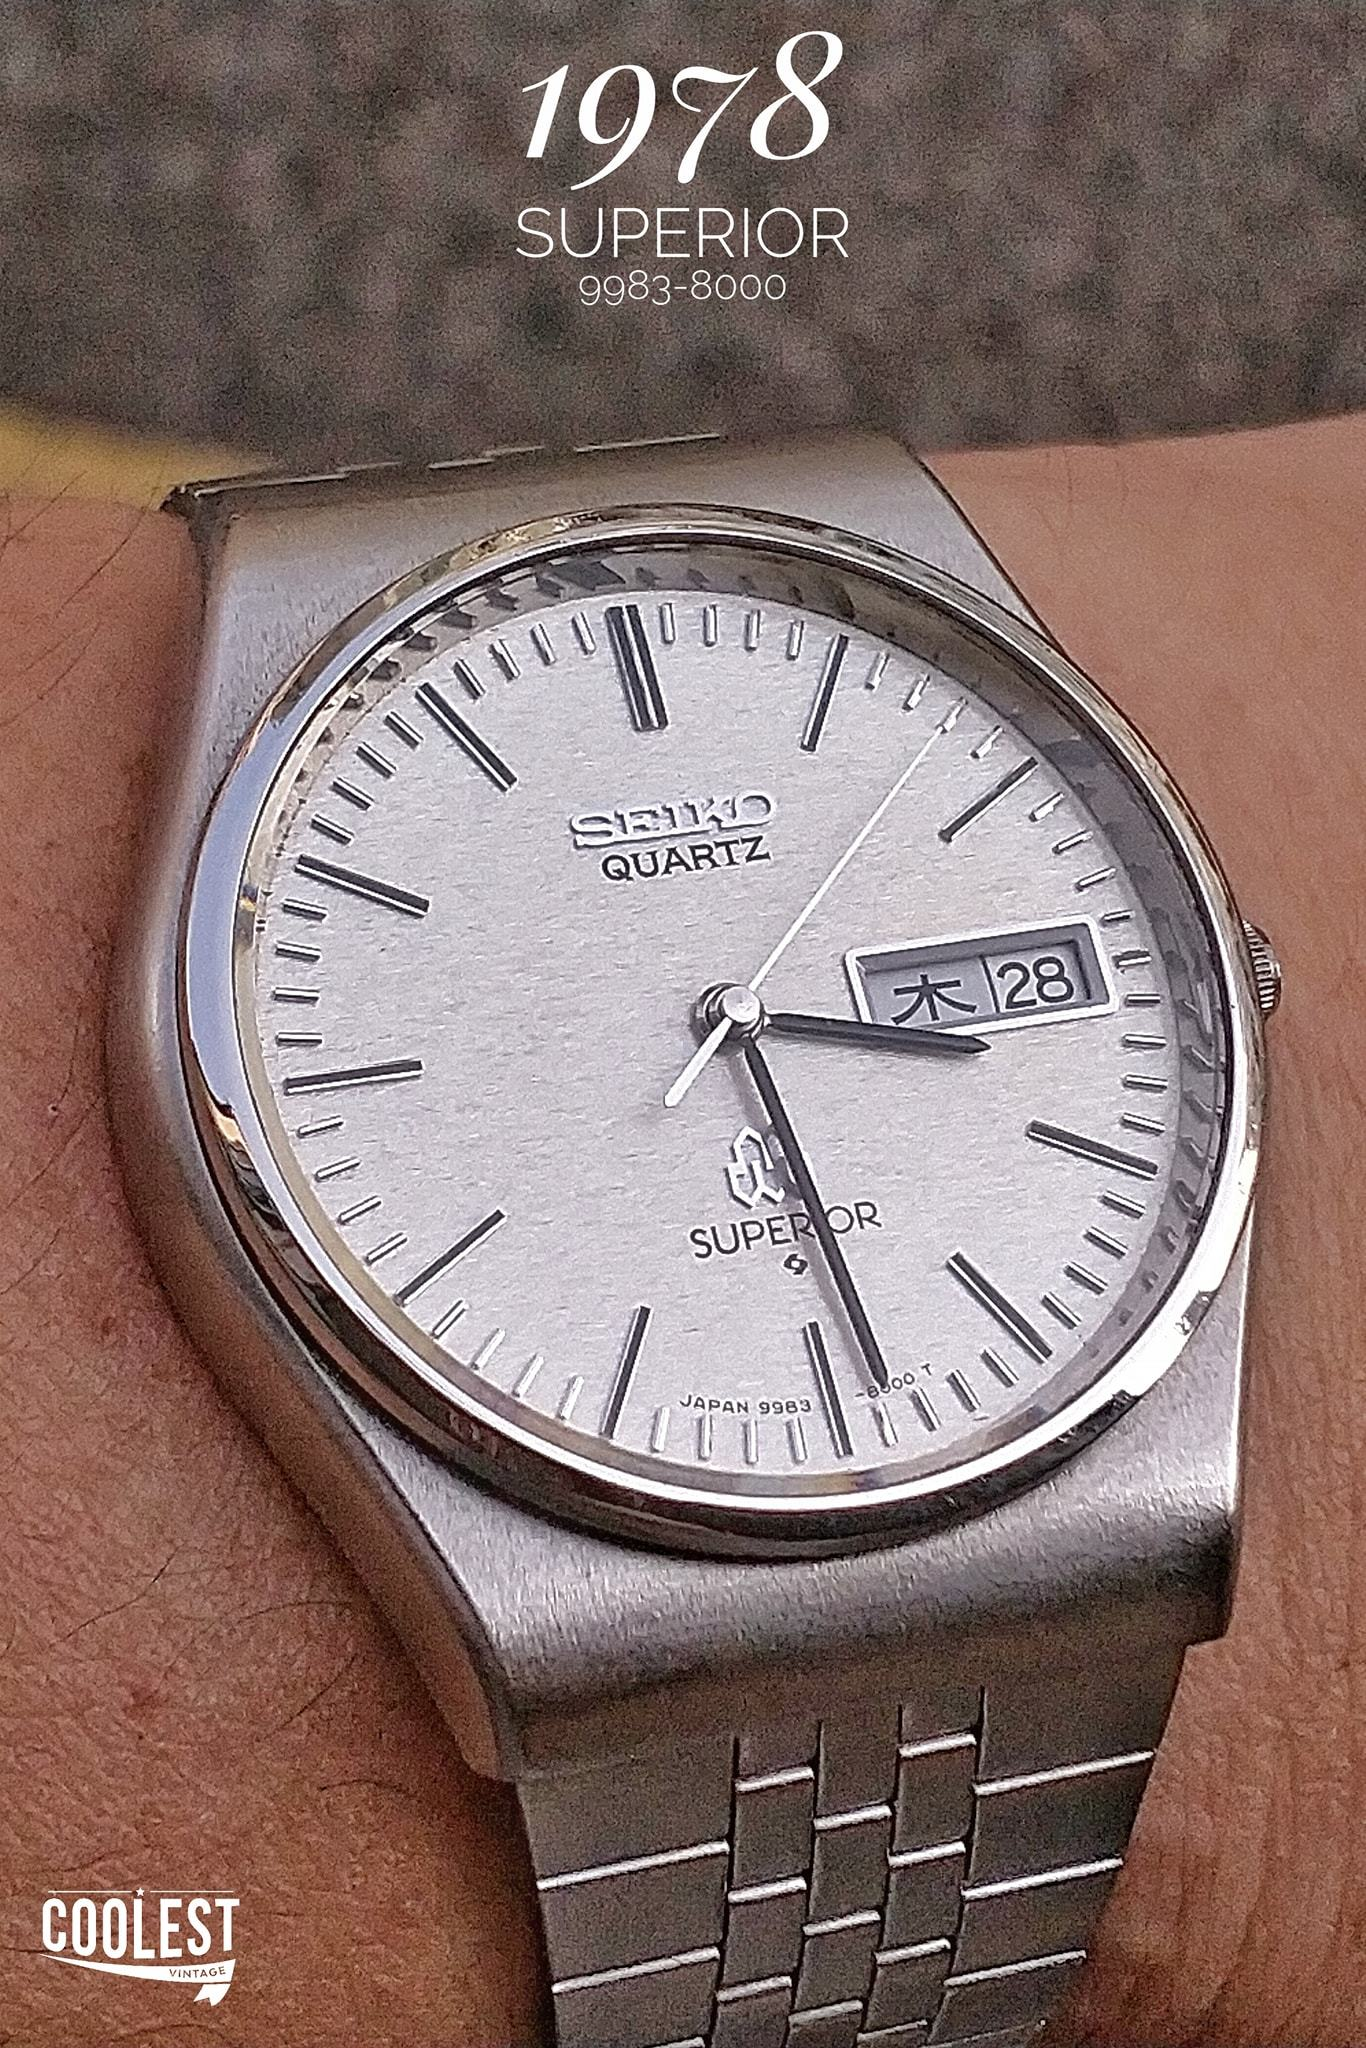 Seiko Twin Quartz SUPERIOR 9983-8000